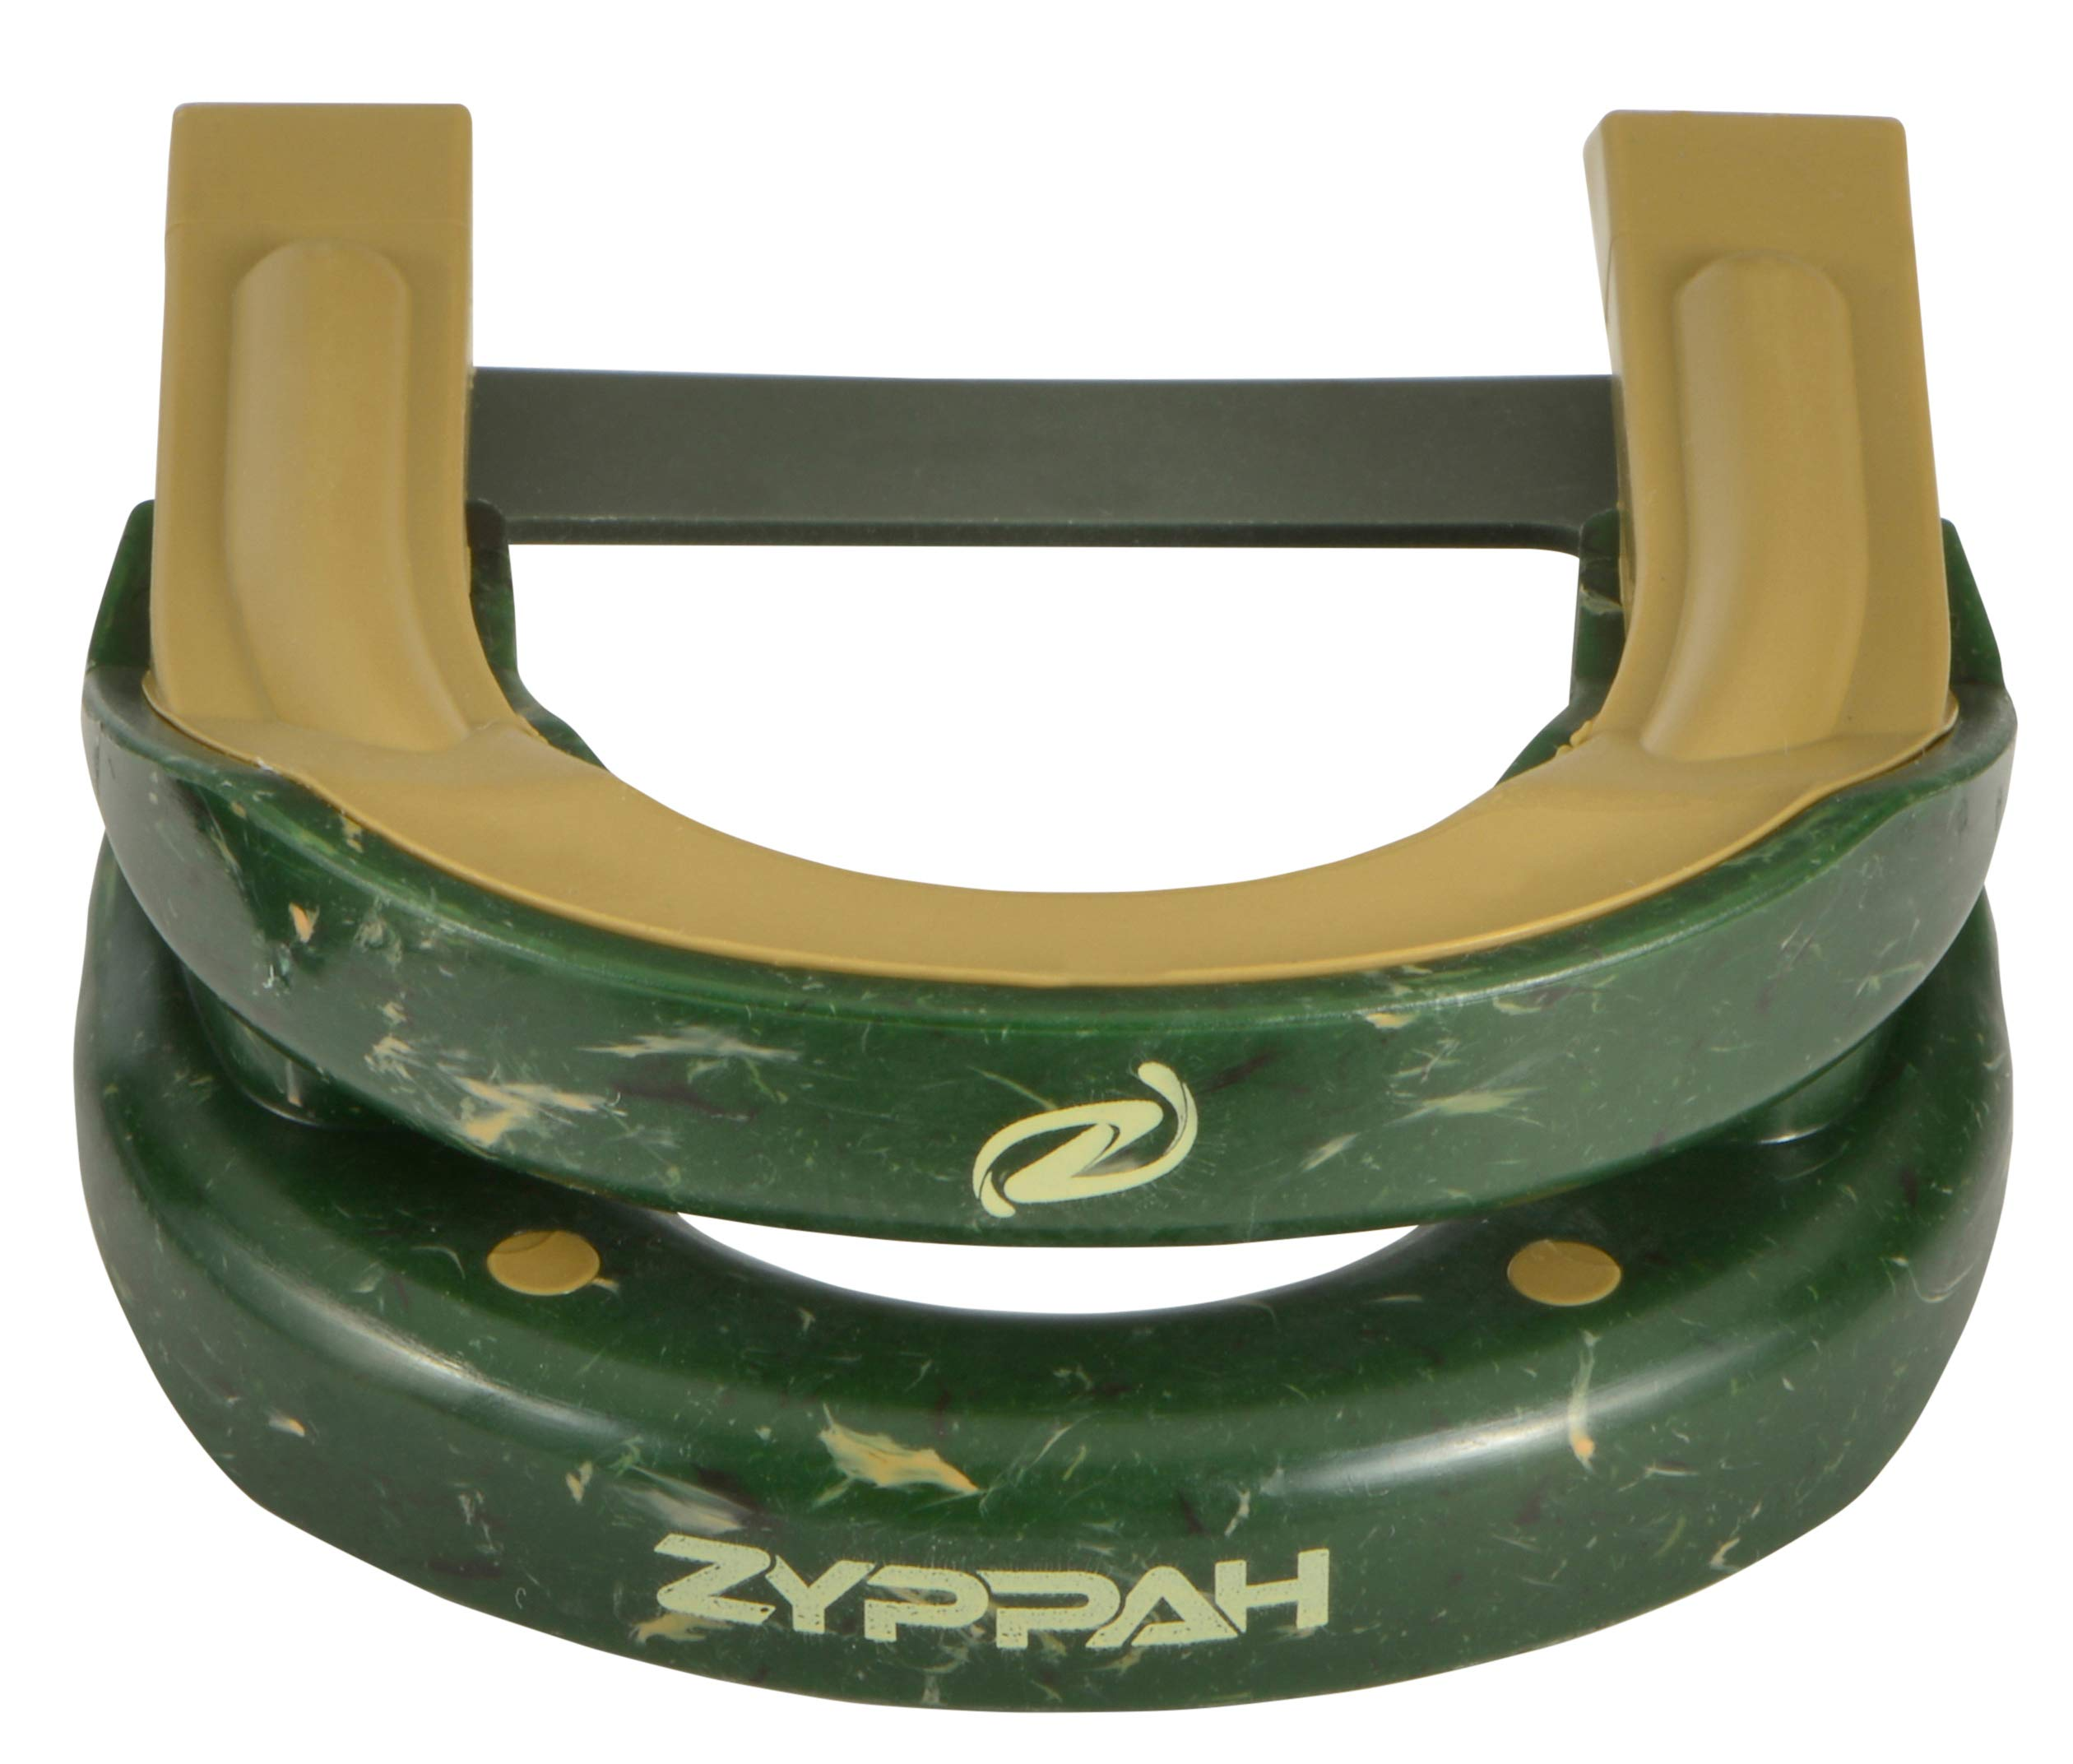 ZYPPAH Anti Snoring Hybrid Oral Appliance Mouthpiece Stop Snoring Sleep Aid Solution Snore Stopper Mouth Guard Device - Made in USA, FDA Cleared - Military